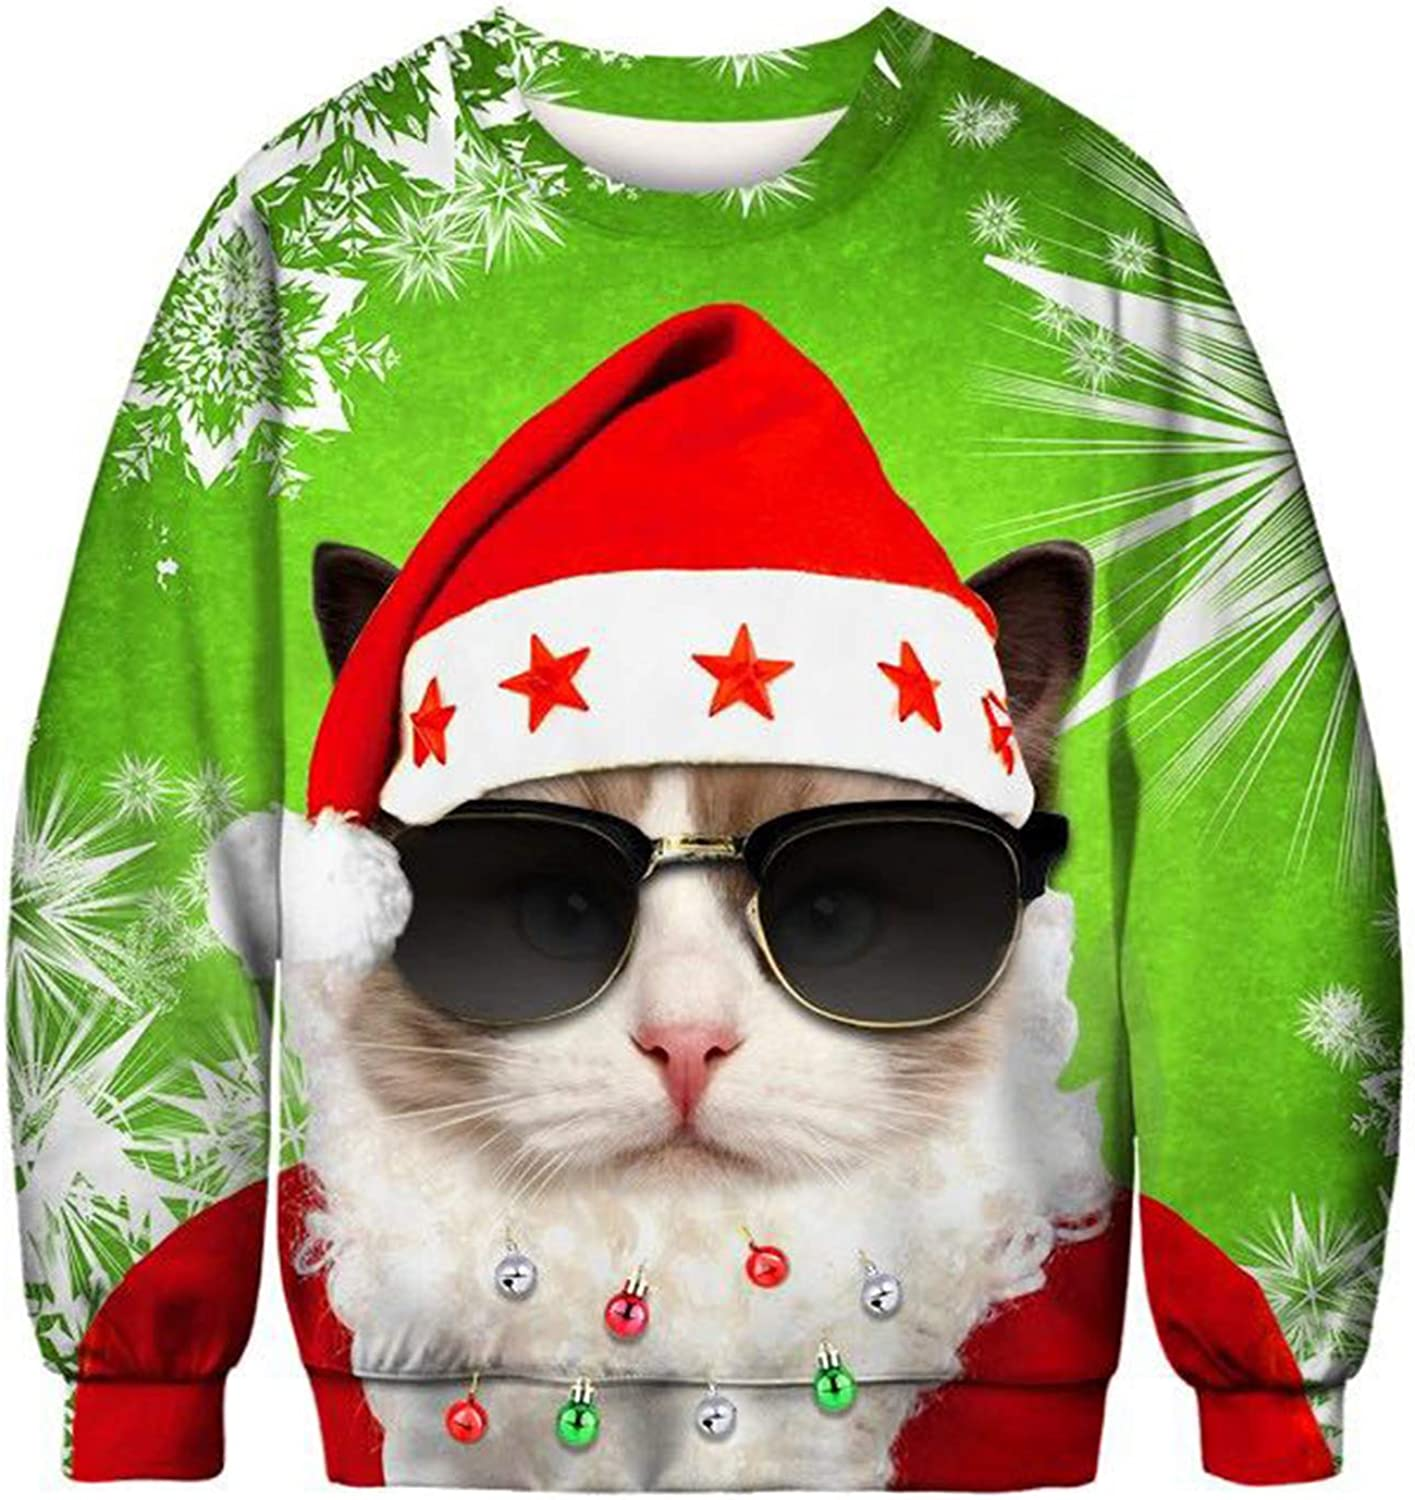 Unisex Funny Christmas Sweatshirt Sweater Novelty 3D Printed Men Women Funny Xmas Plus Size Party Sweater Pullover …: Clothing